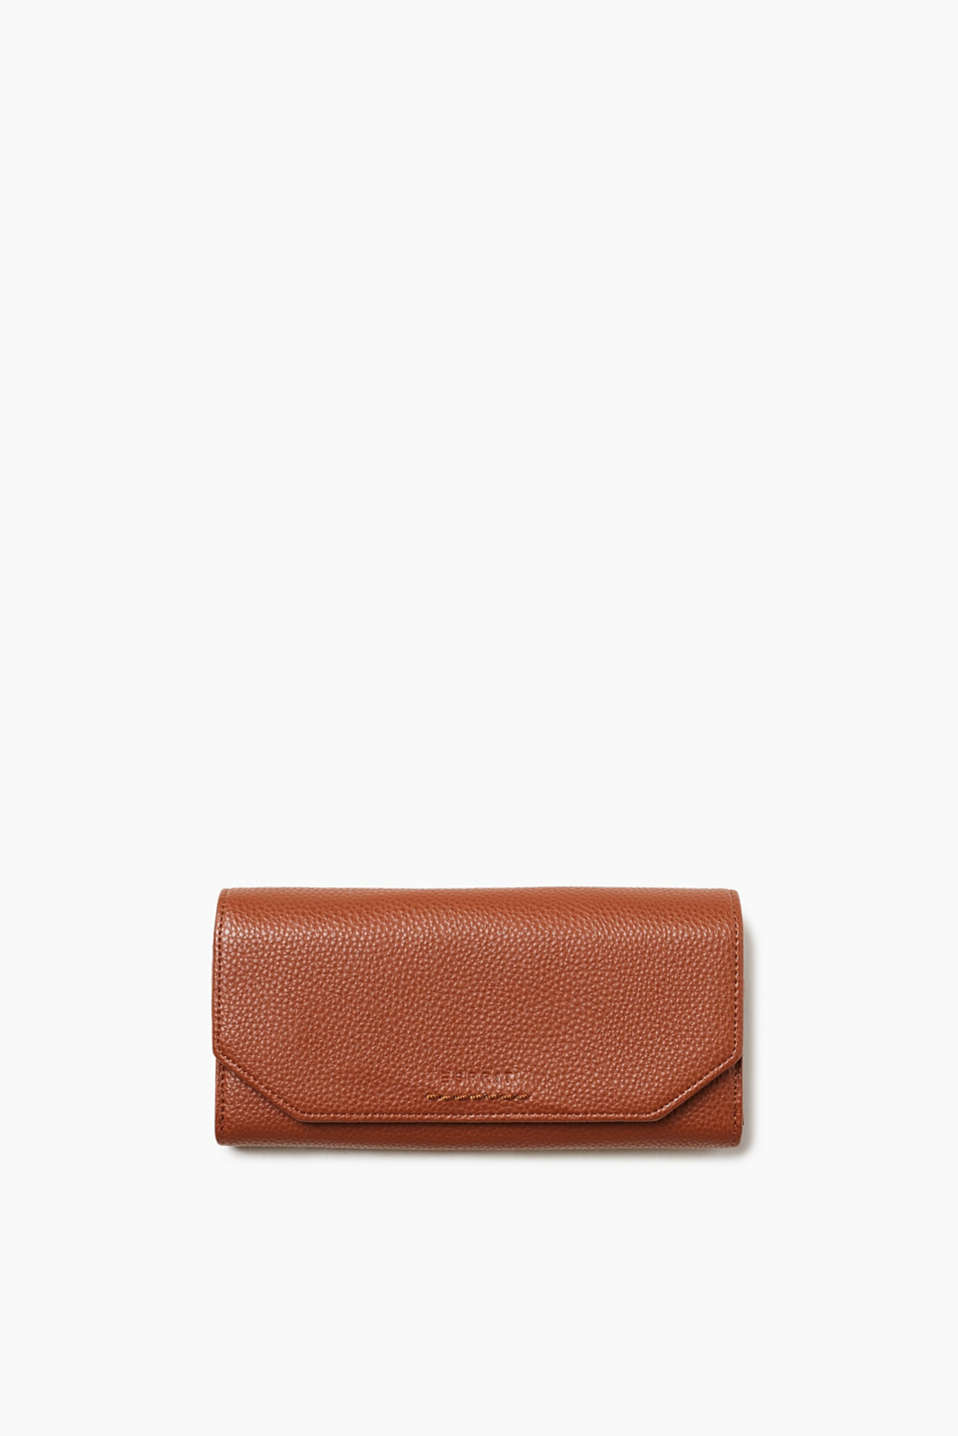 The elegant faux leather makes this purse an exquisite accessory in your handbag.